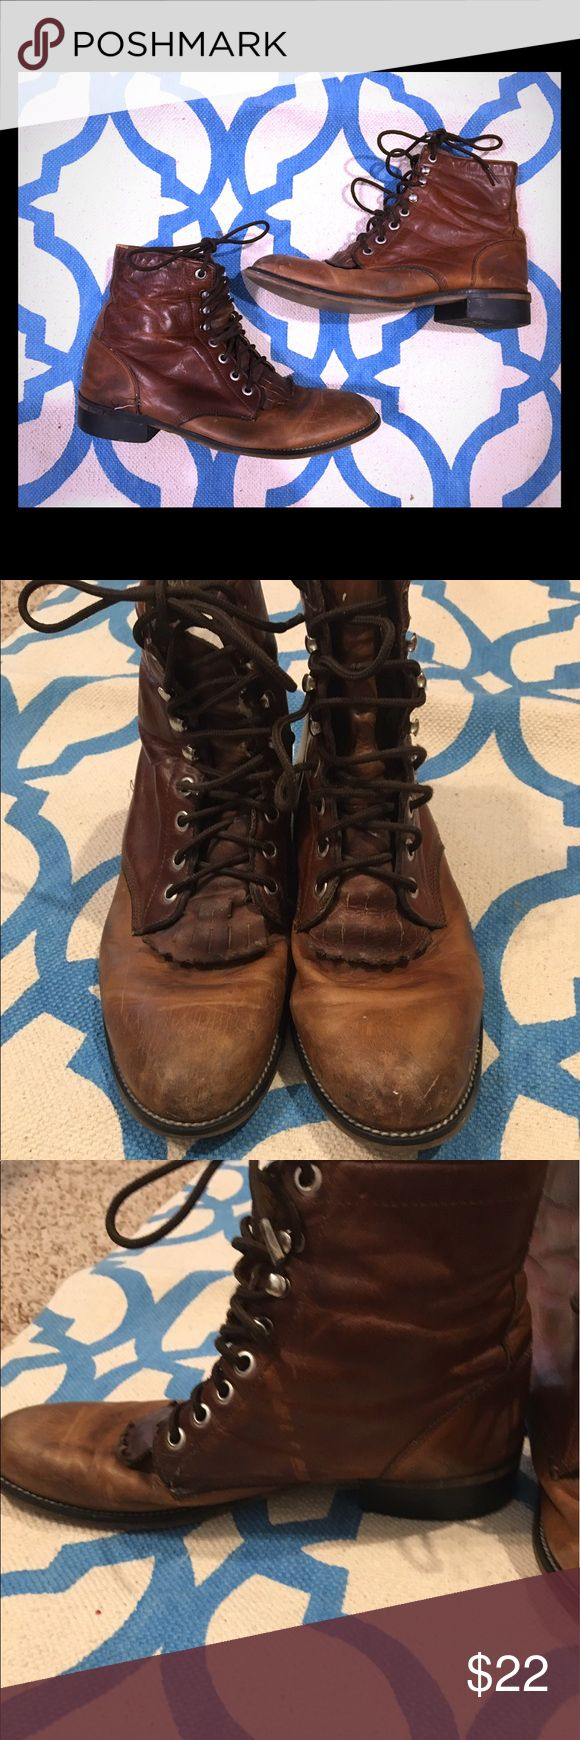 8.5 leather hipster boots Justin hipster boots. Genuine leather Justin Boots Shoes Lace Up Boots